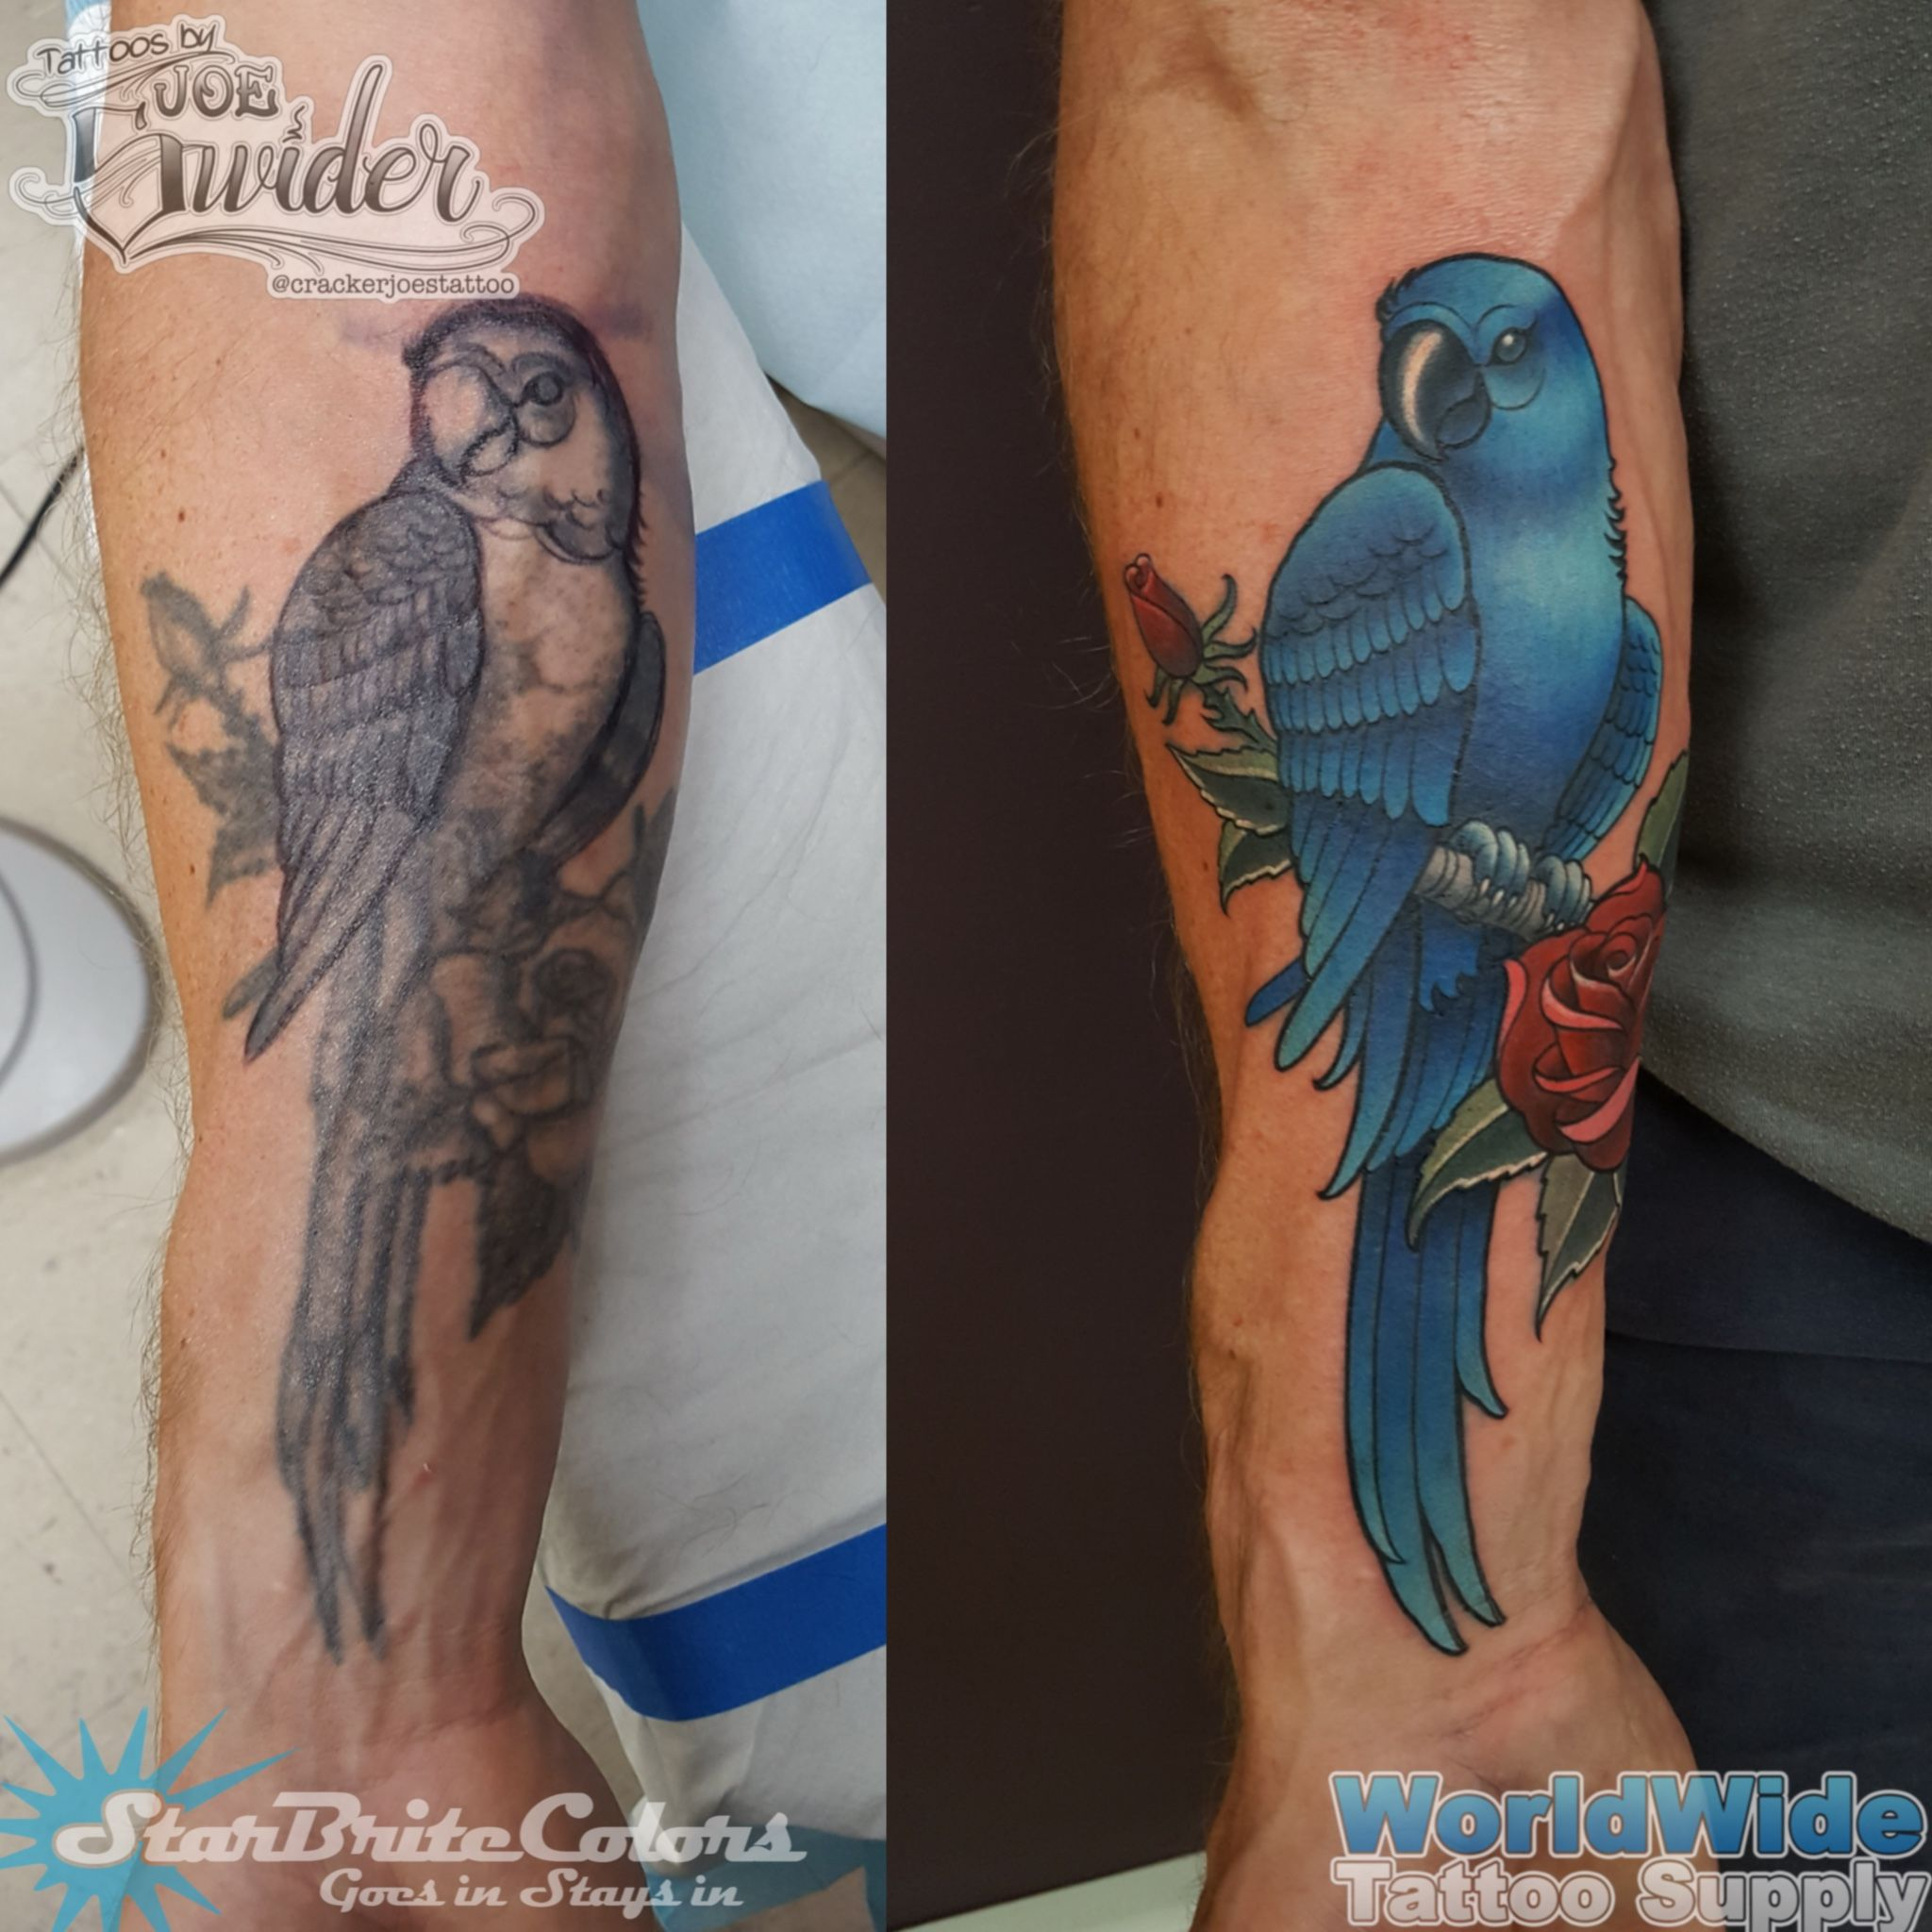 Parrot Tattoo Redo By Cracker Joe Swider In Connecticut Parrot